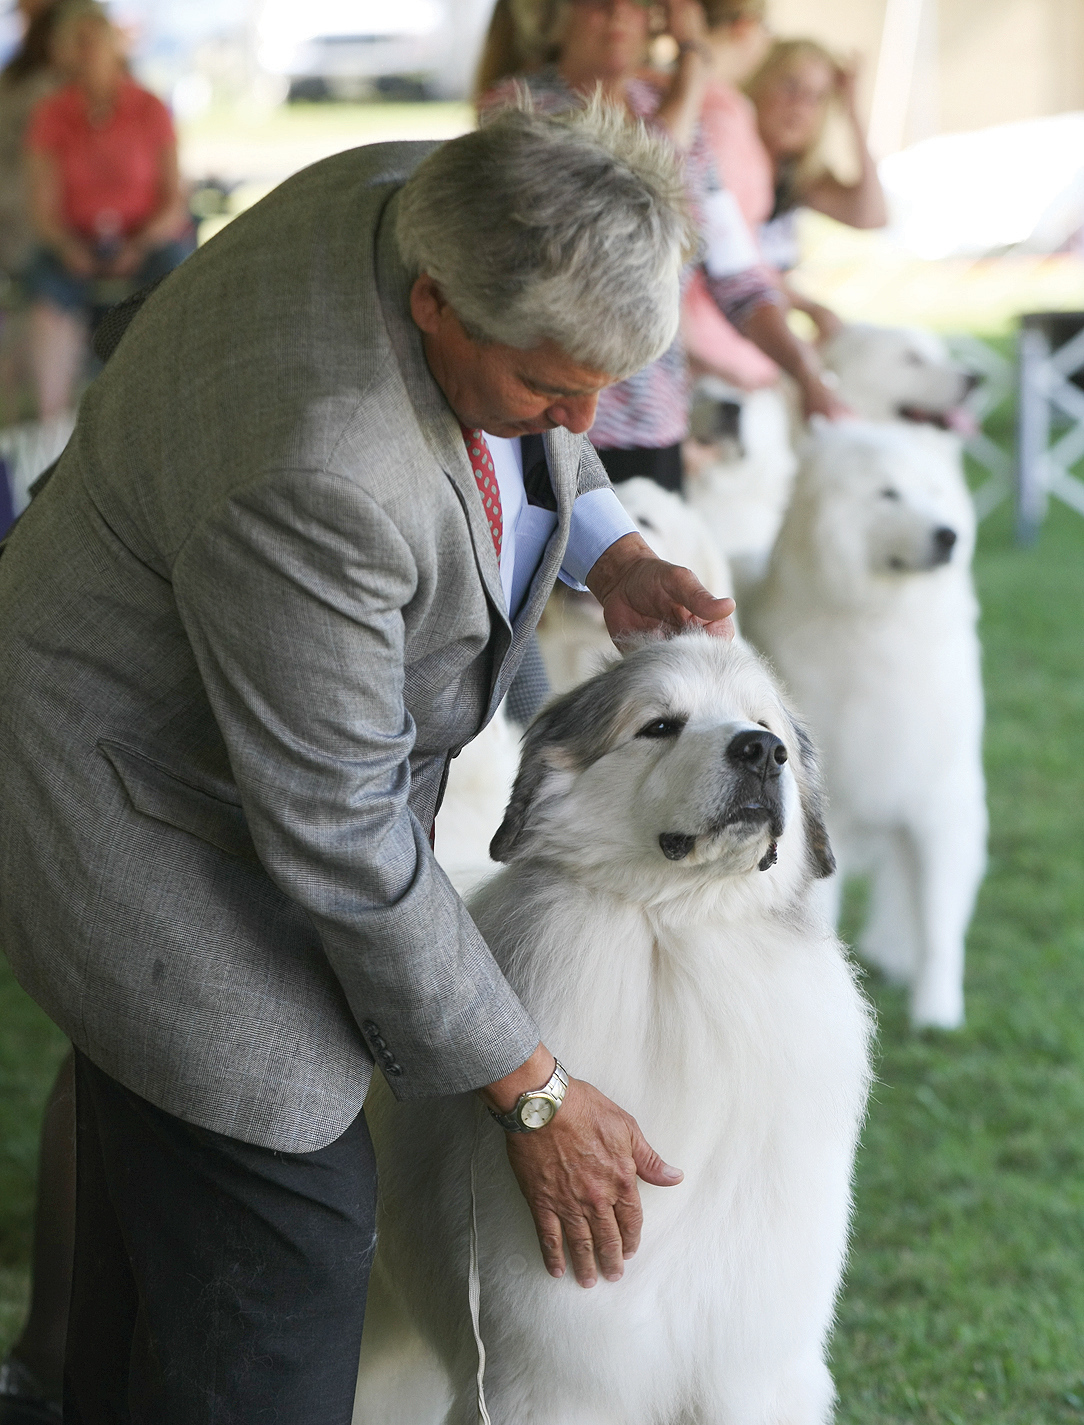 Spencer Tulis / Finger Lakes Times<br /> The Wine Country Circuit Dog Show is one of the largest circuit shows in the country and is back at Sampson State Park (starting yesterday) for four days. Over 3,000 dogs are shown daily, representing over 149 different breeds including the Great Pyrenees pictured. The Wine Country Circuit is hosted by the Elmira Kennel Club, the Onondaga Kennel Association, the Kanadasaga Kennel Club and the Finger Lakes Kennel Club.